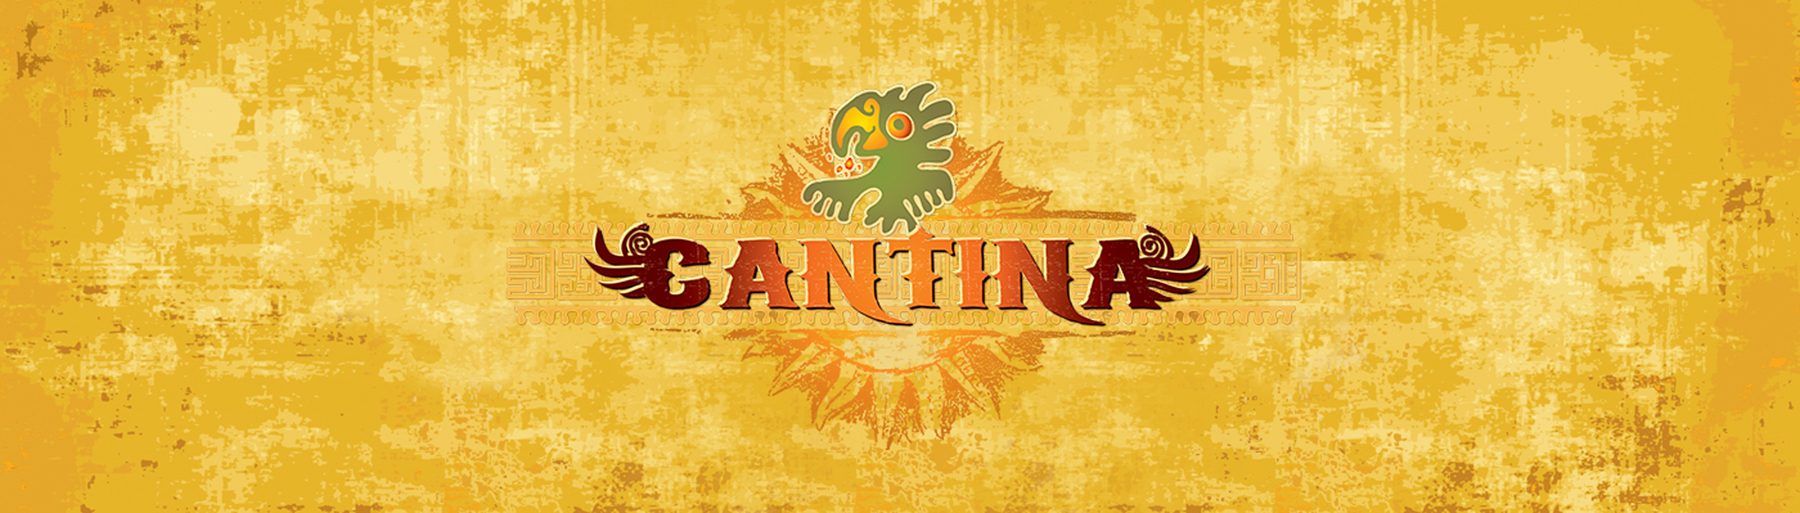 West Group Cantina Restaurant Logo on Grunge Background